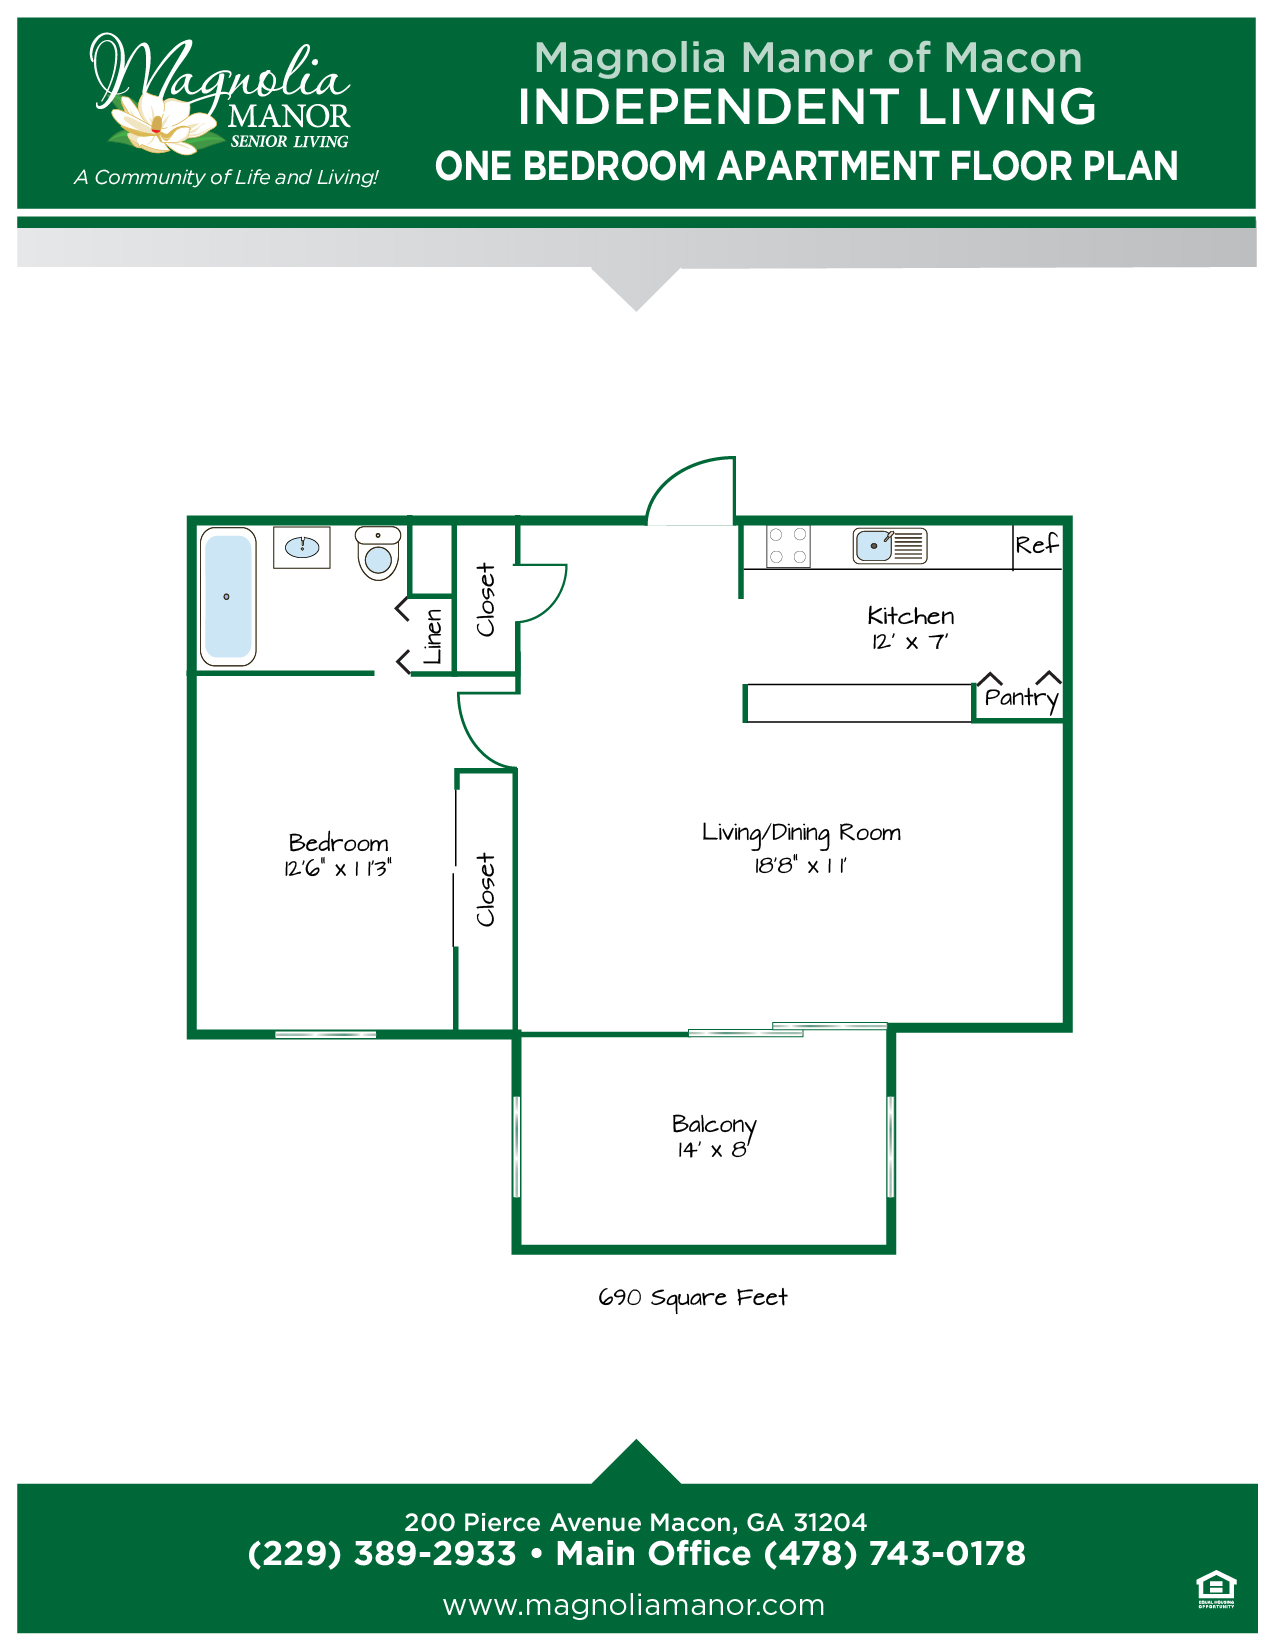 00344 MACON IL Floor Plan One Bedroom-01